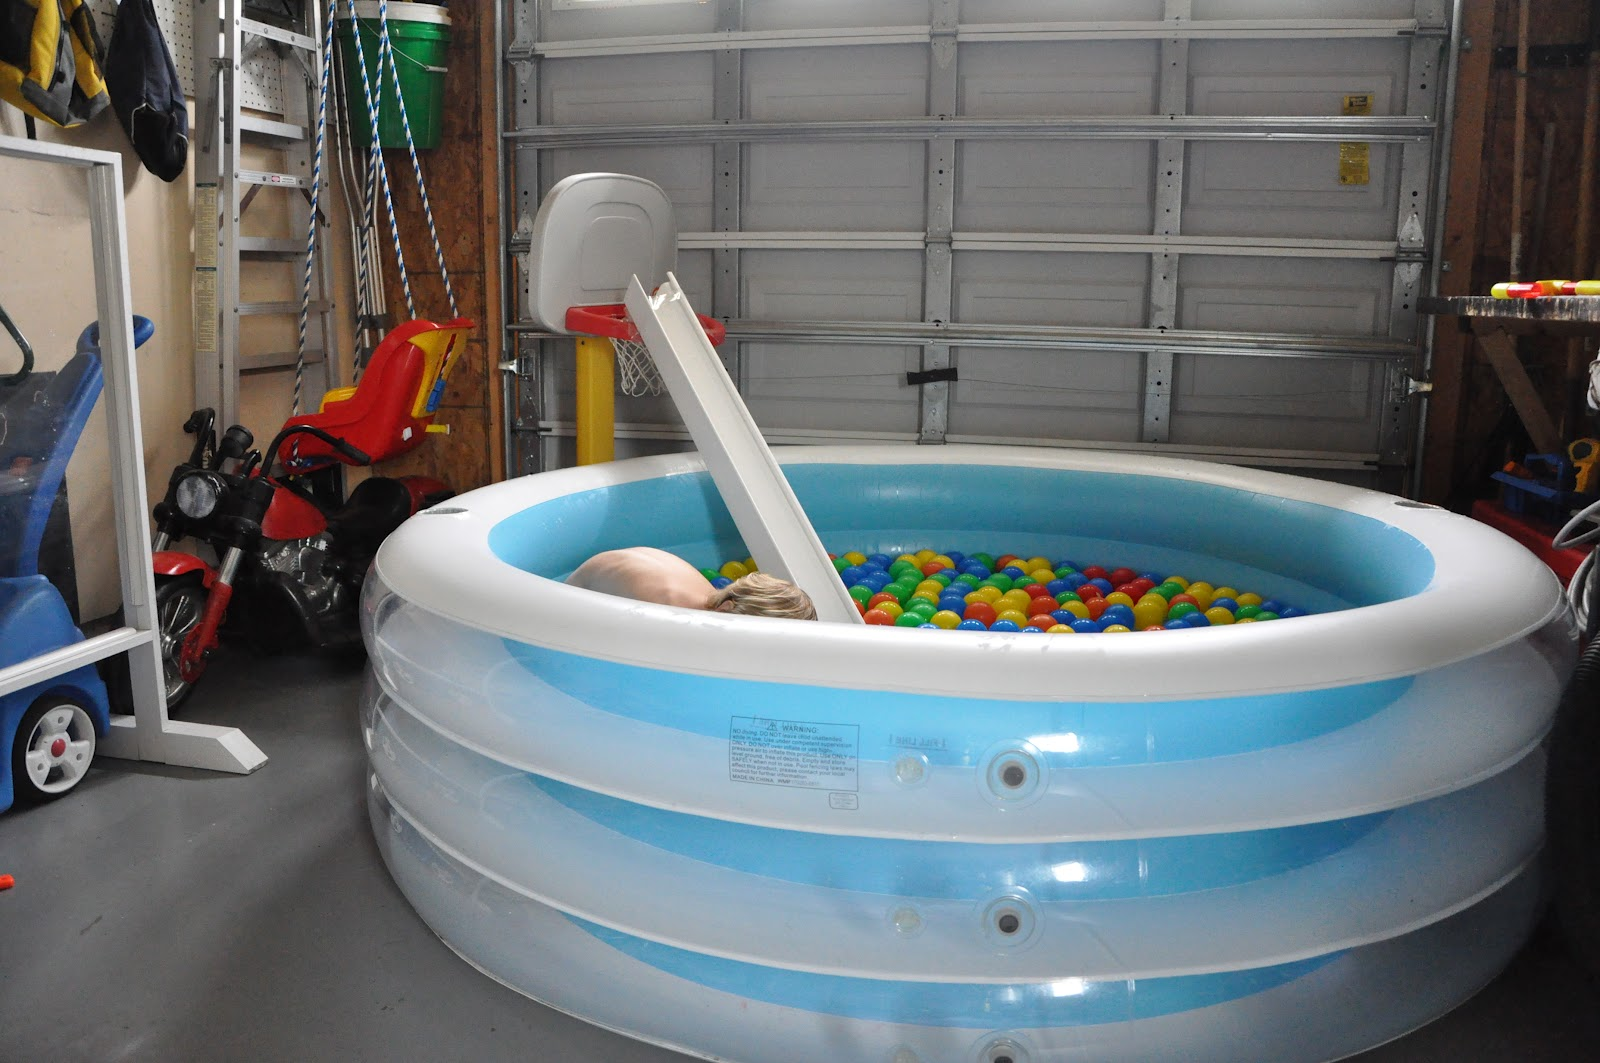 Balls Bubbles And An Indoor Pool Activities For